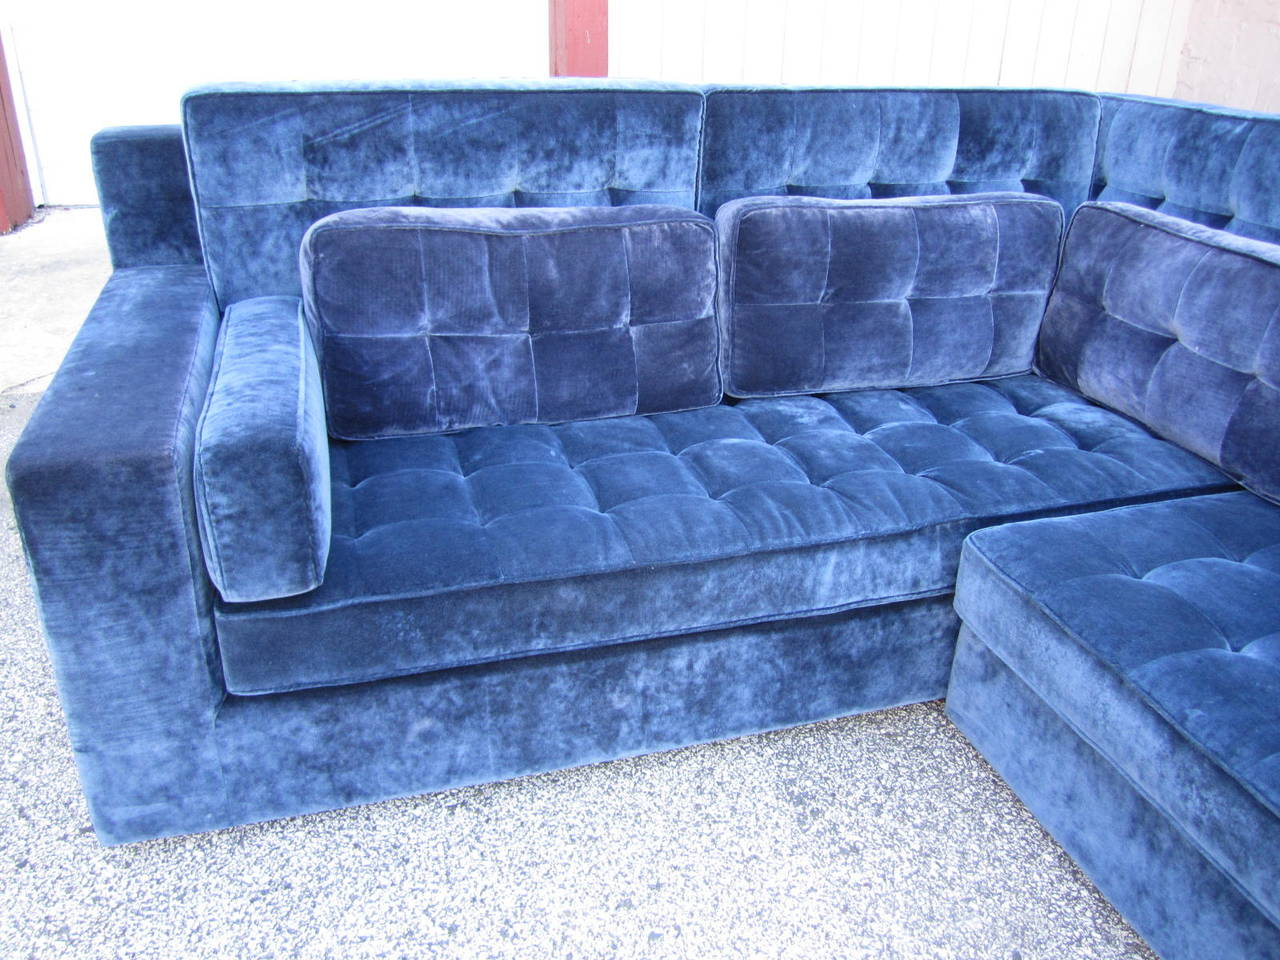 Late 20th Century Stunning Large-Scale Harvey Probber Style Sectional Sofa, Mid-Century Modern For Sale